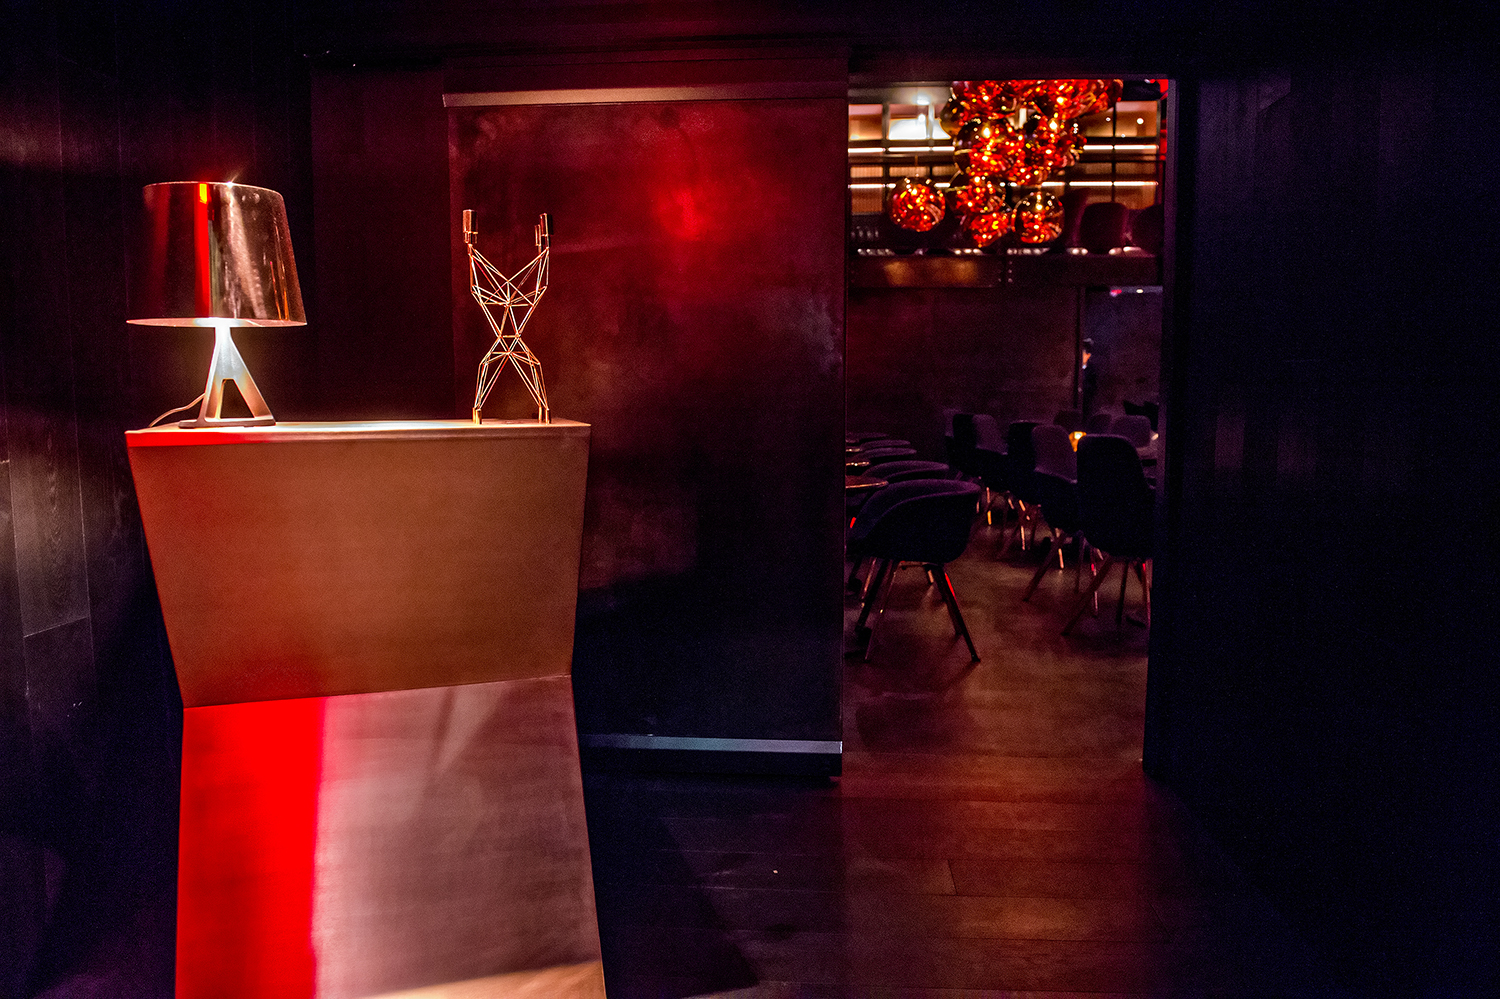 Look Inside Himitsu The Stunning New Lounge From The Umi Sushi Team